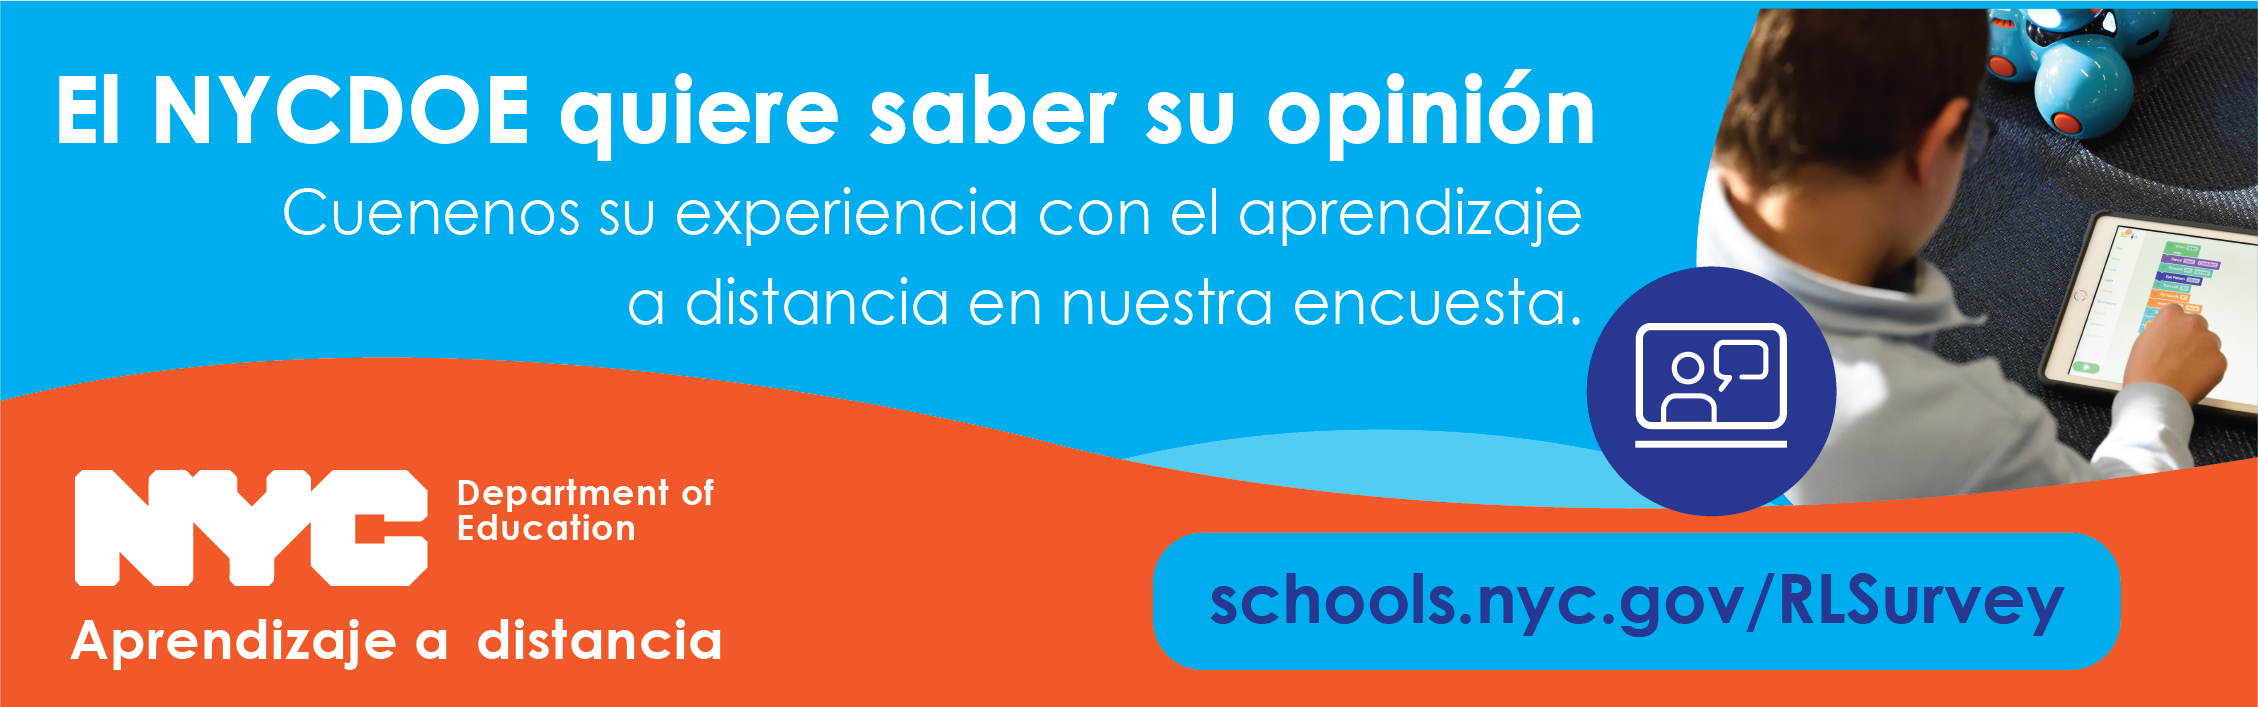 same as above NYC DOE remote learning link but with spanish text